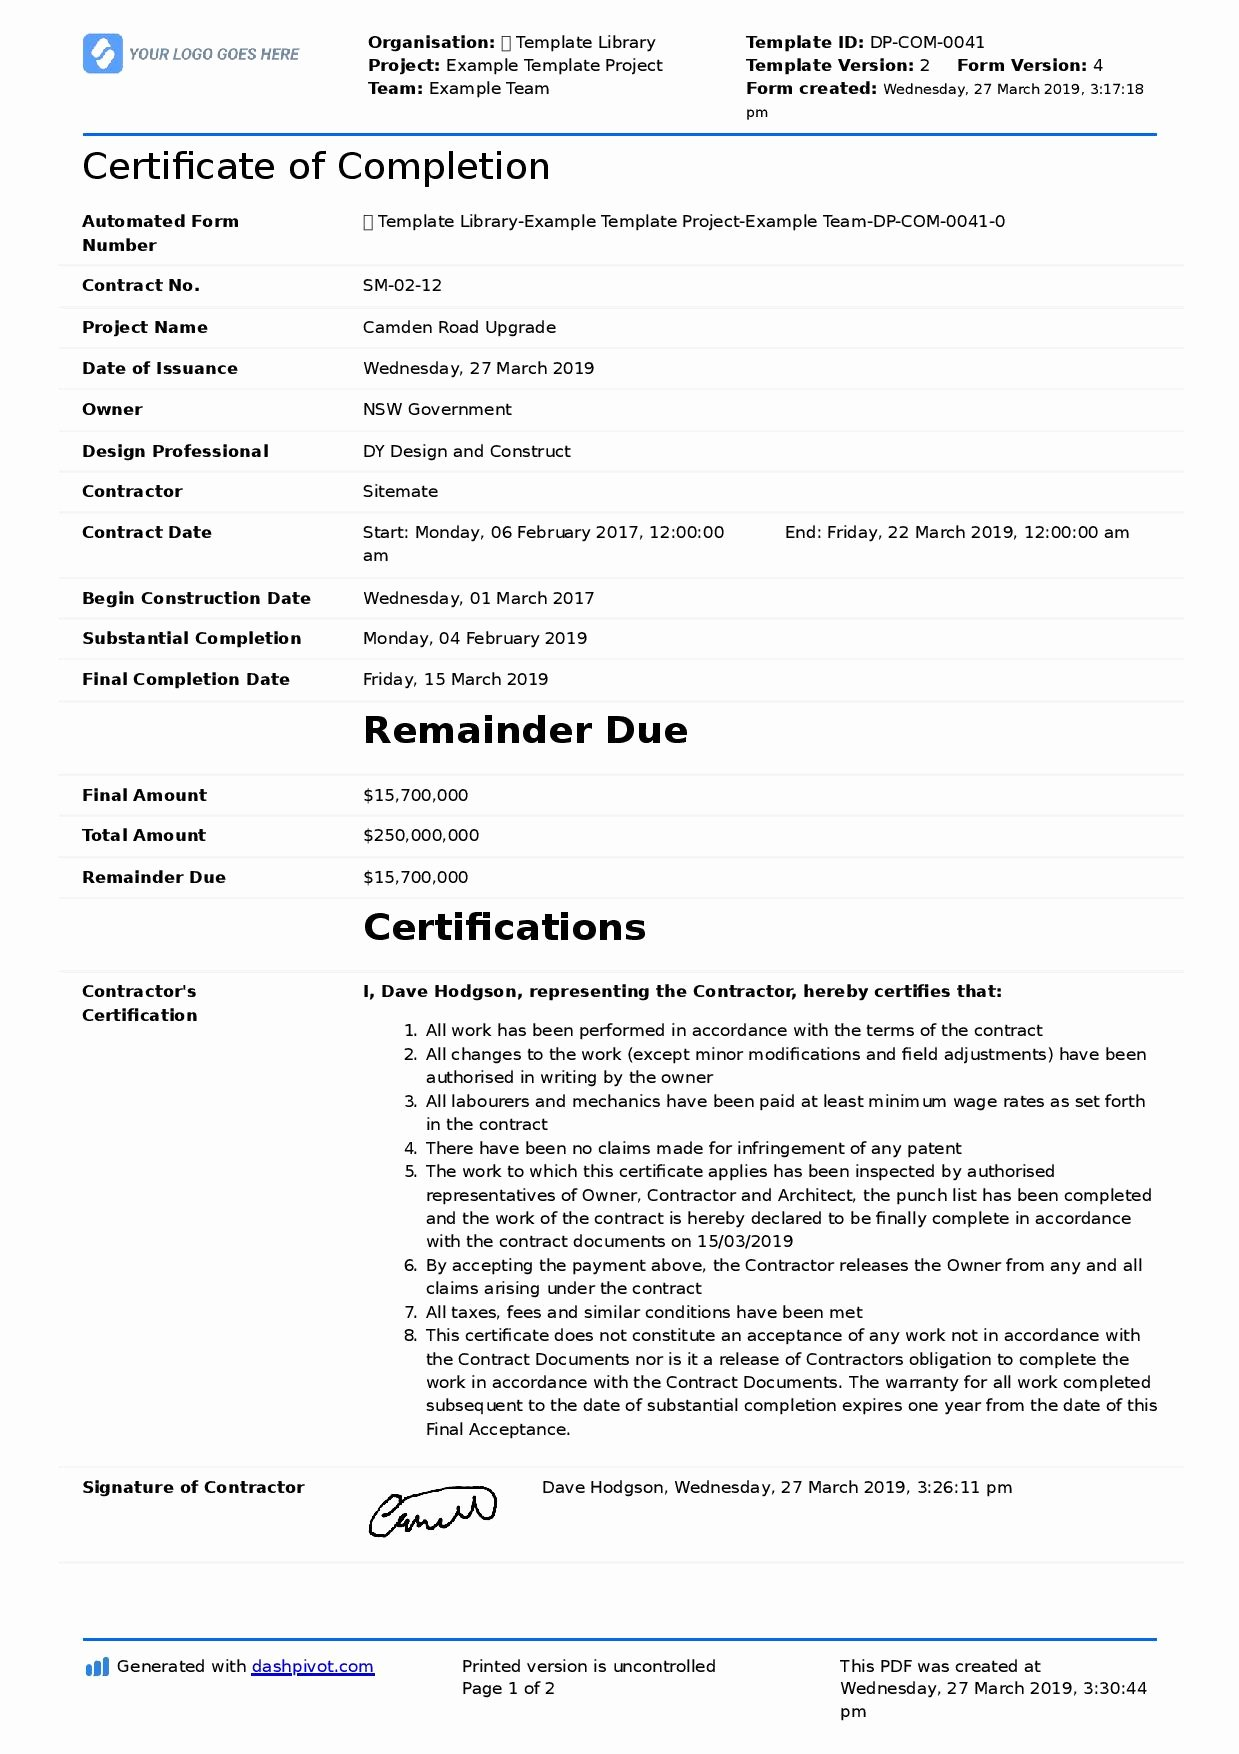 Construction Certificate Of Completion Template Inspirational Certificate Of Pletion for Construction Free Template